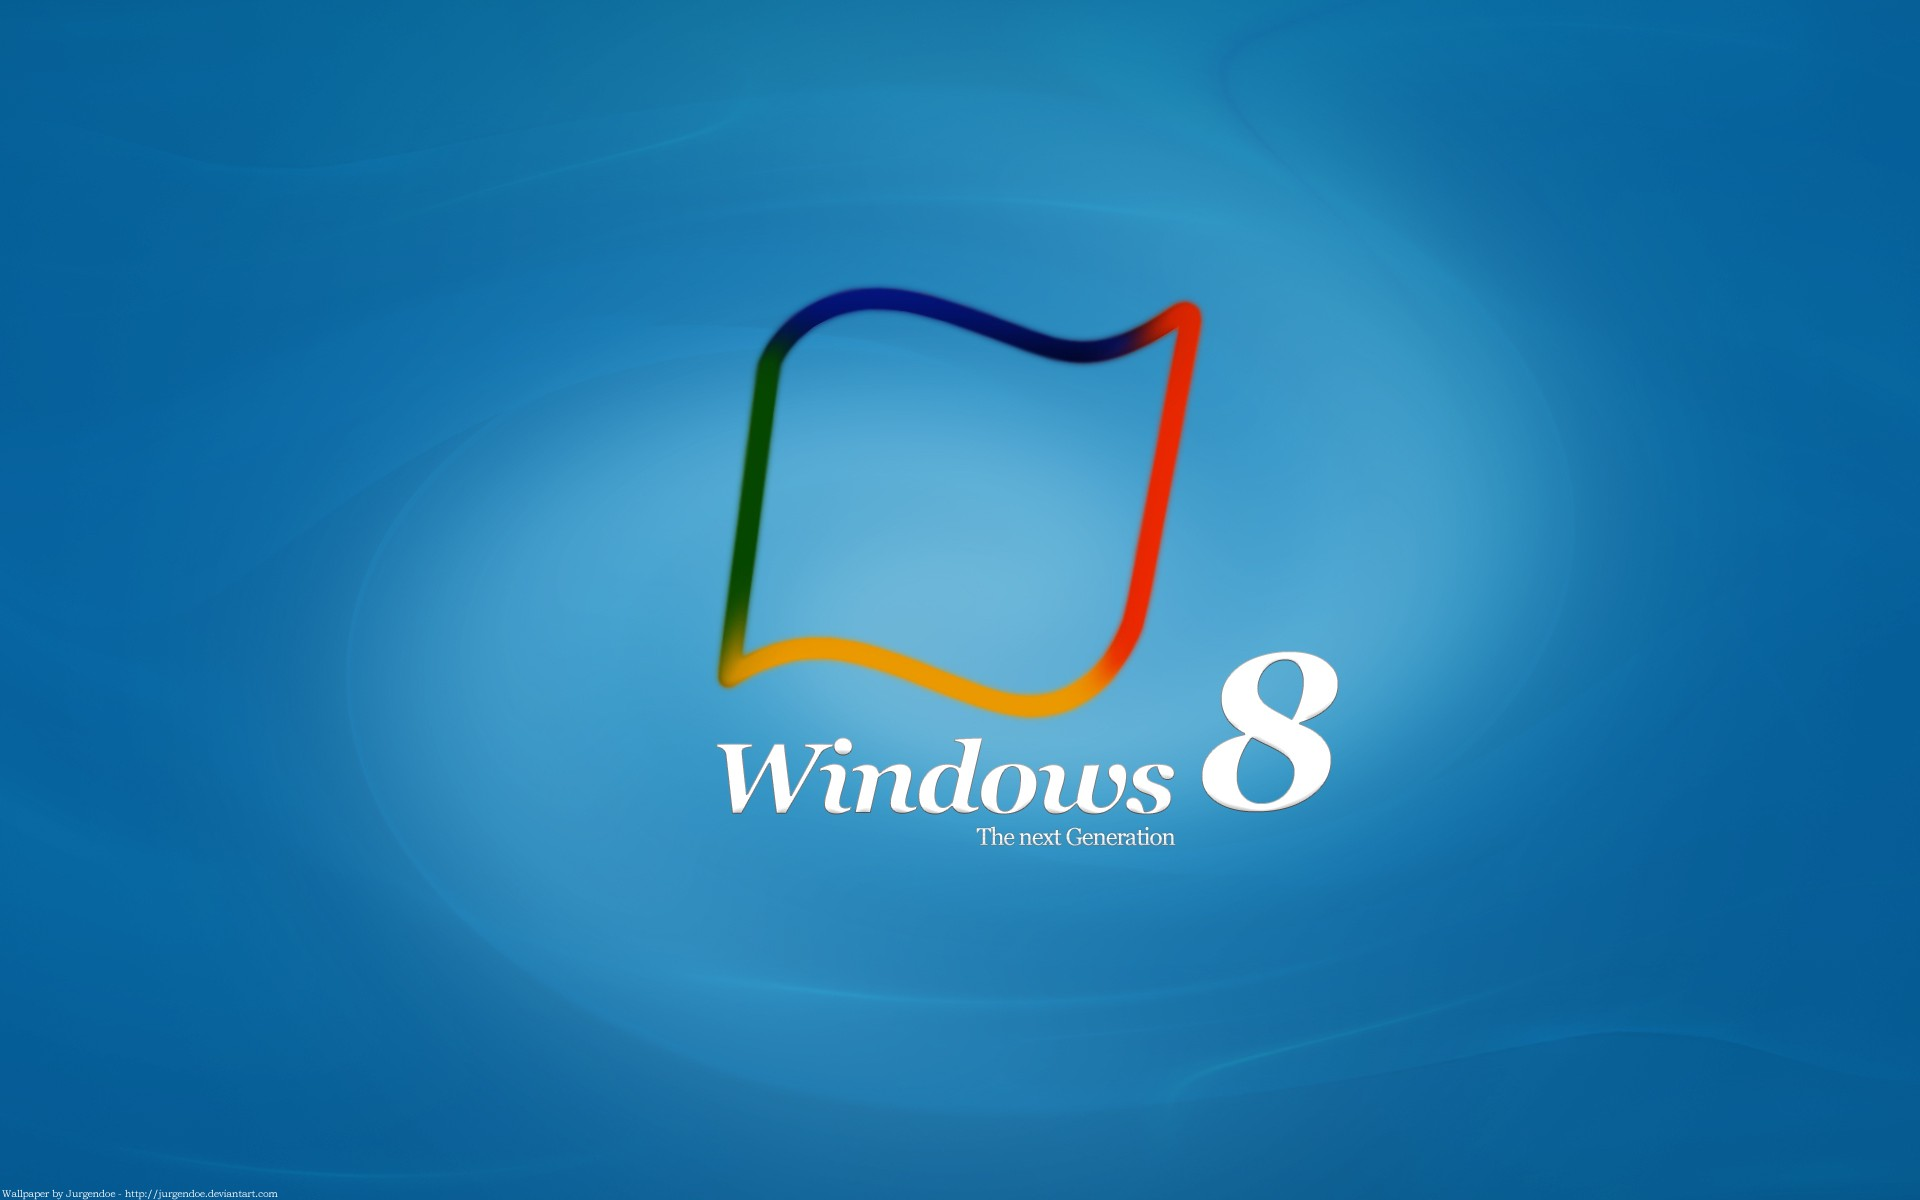 Windows 8 High Quality Wallpaper